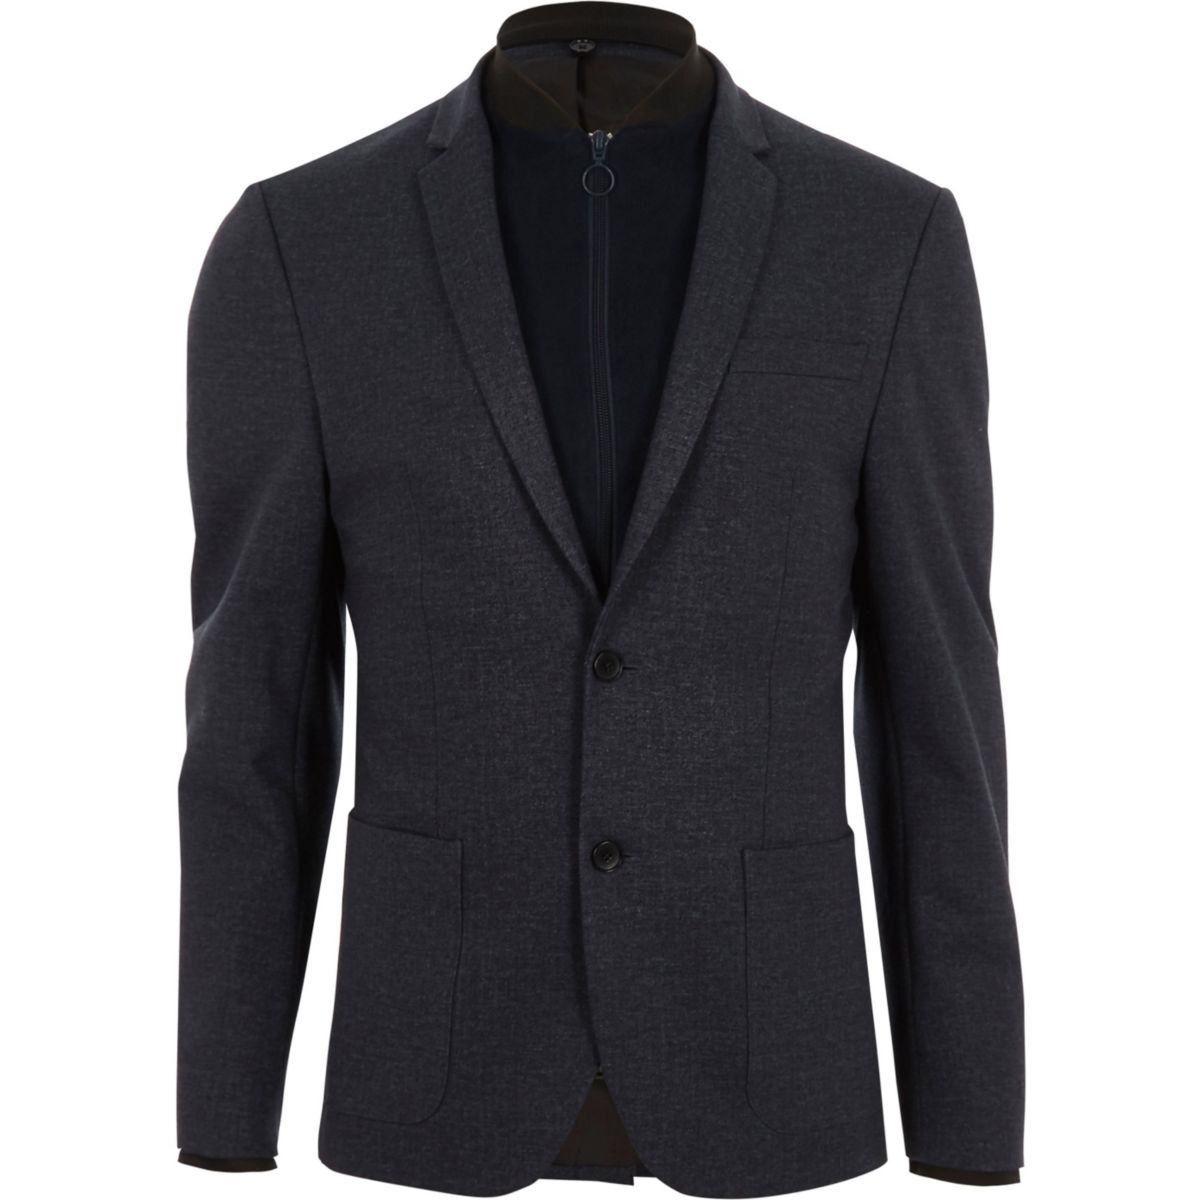 Men's Clearance & Sale Discover our selection of cheap suits and tailoring in the Suit Direct Clearance Sale. Choose from structured suit jackets, sleek shirts, sophisticated ties, smart trousers and overcoats.